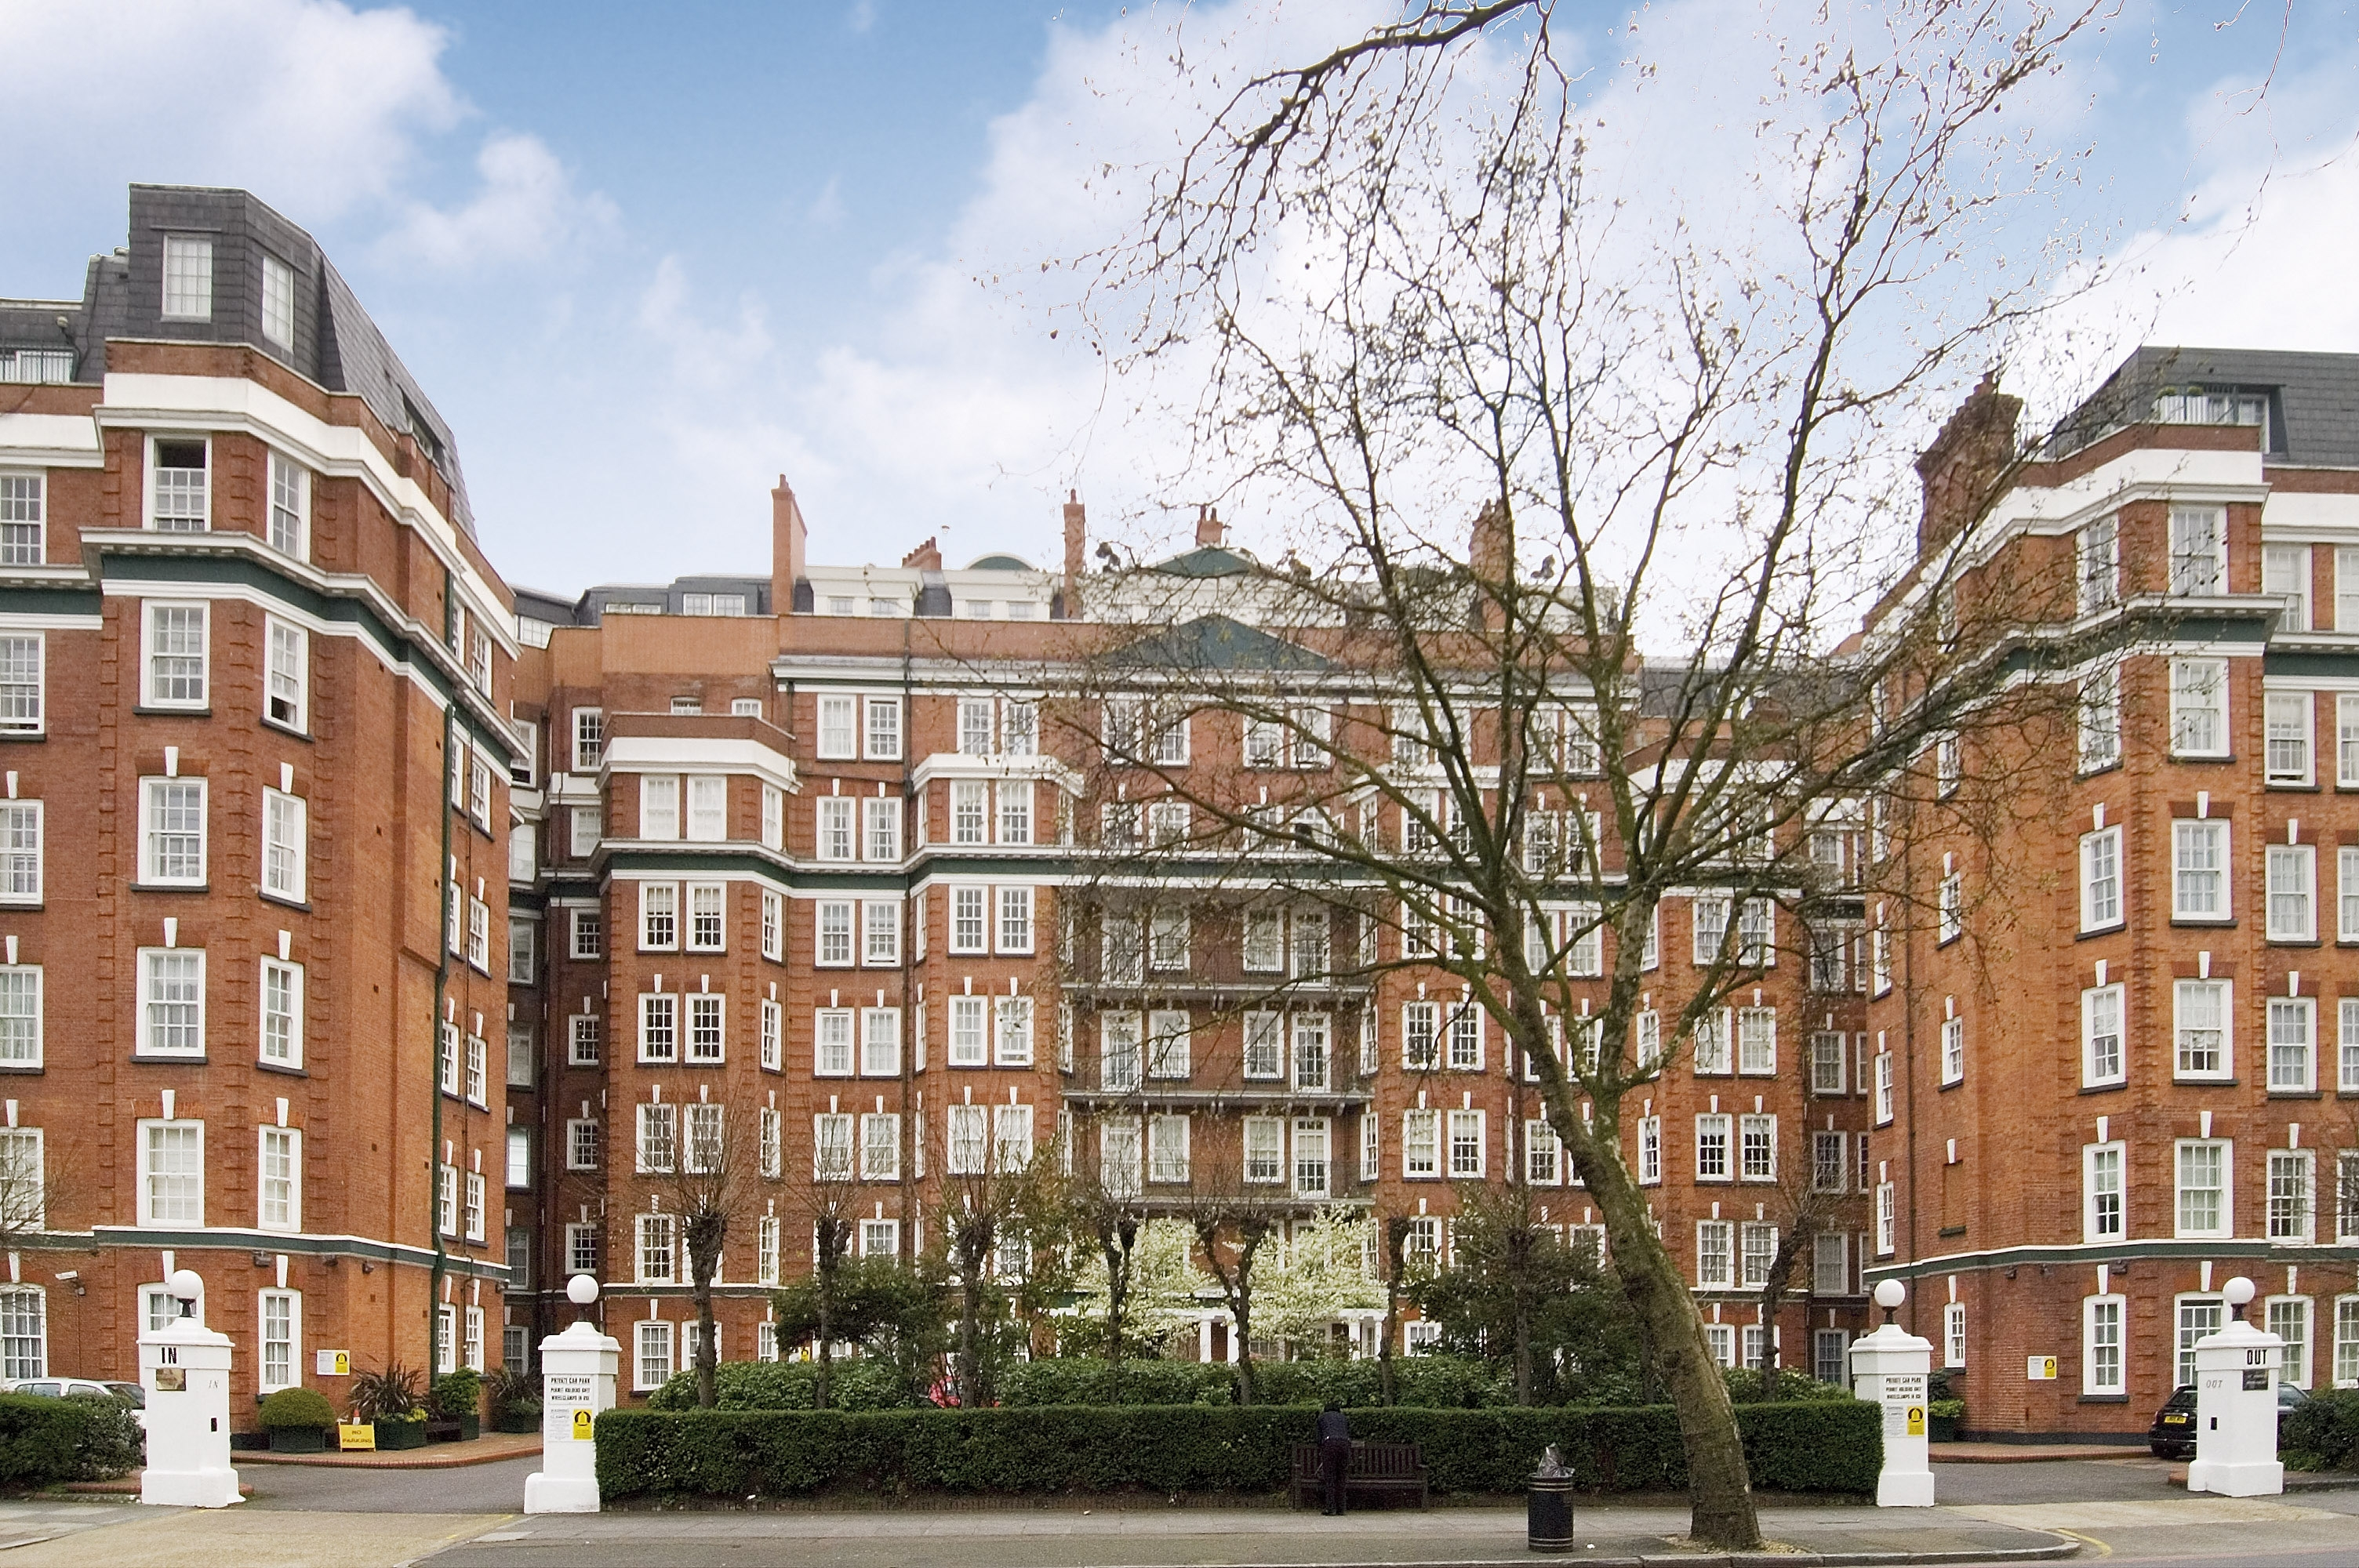 St Johns Wood Court, St Johns Wood Road, London, NW8